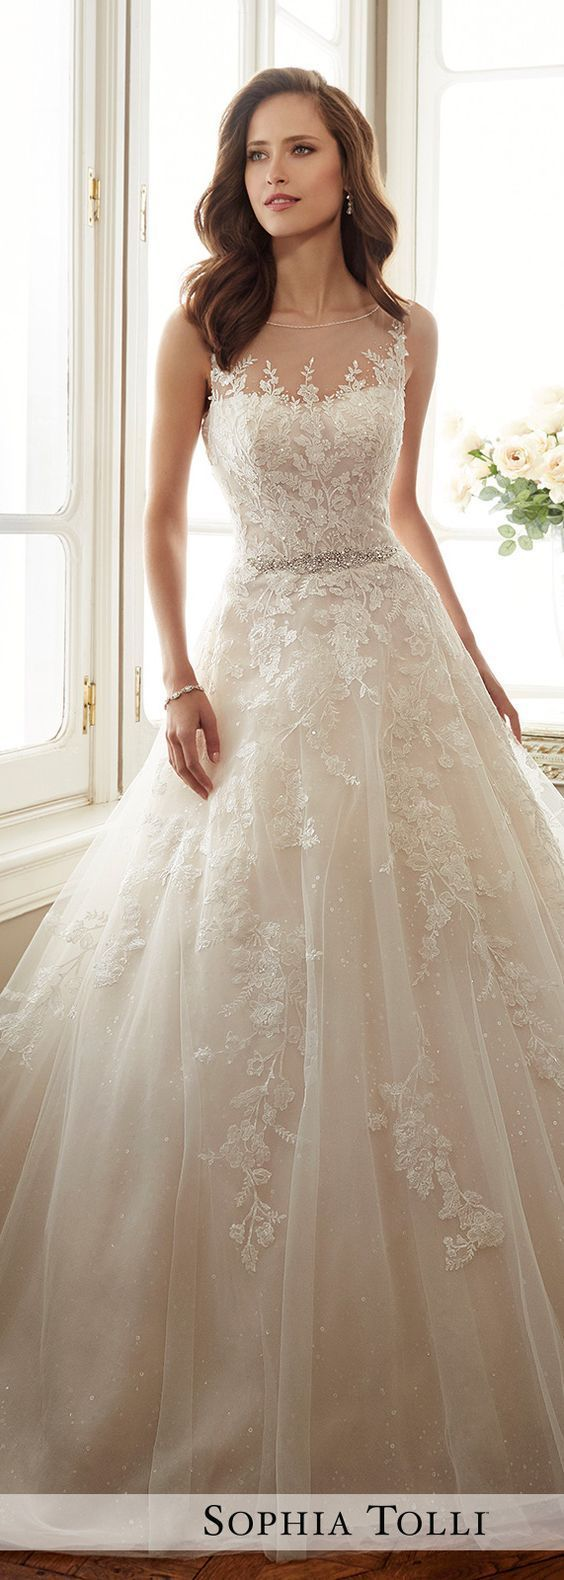 Best 25 Beautiful wedding dress ideas on Pinterest  Bridal dresses Most beautiful wedding